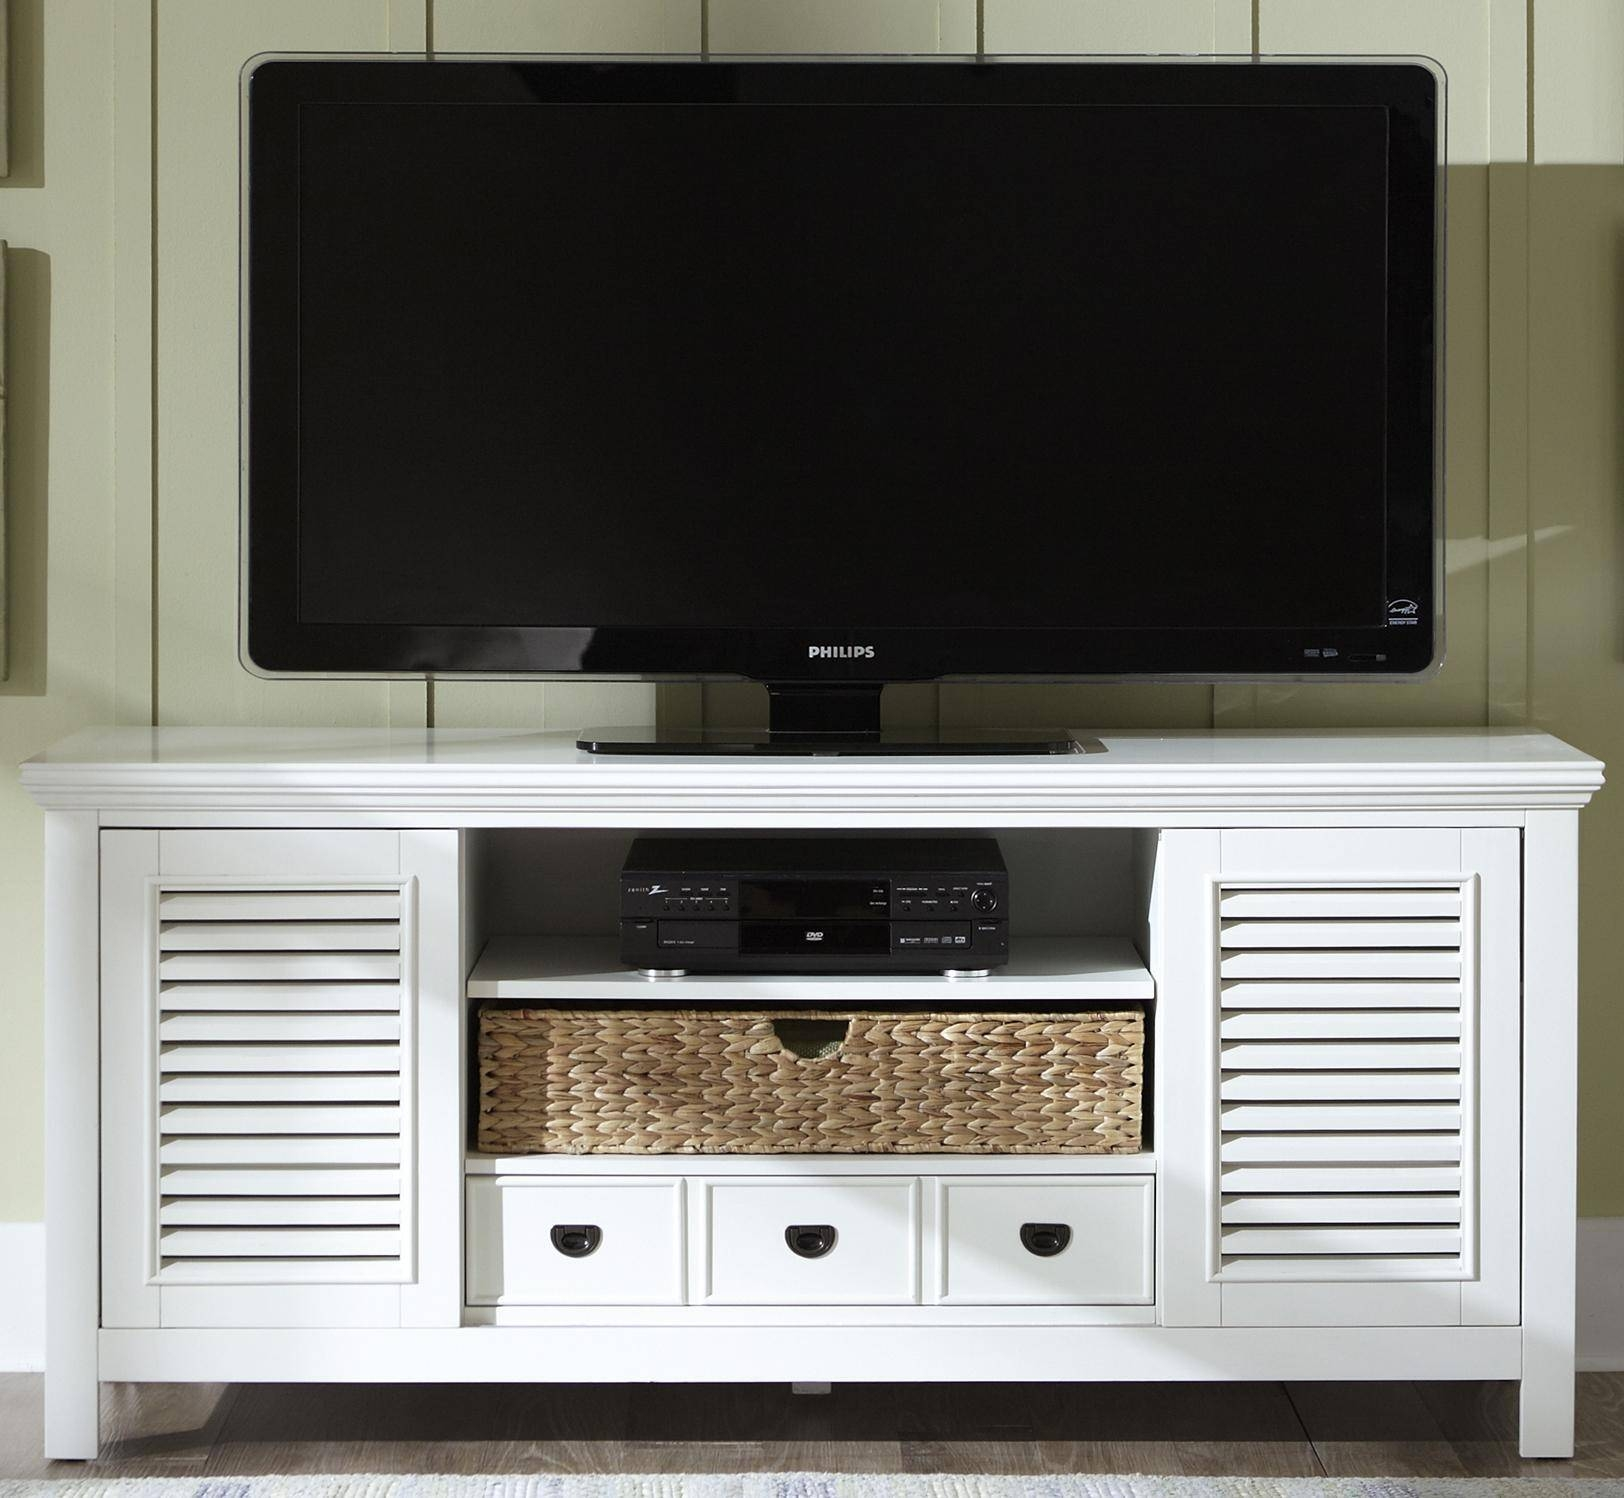 Entertainment Tv Stand With Drawer, Sliding Doors, And Adjustable Throughout Tv Stands With Drawers And Shelves (View 5 of 15)